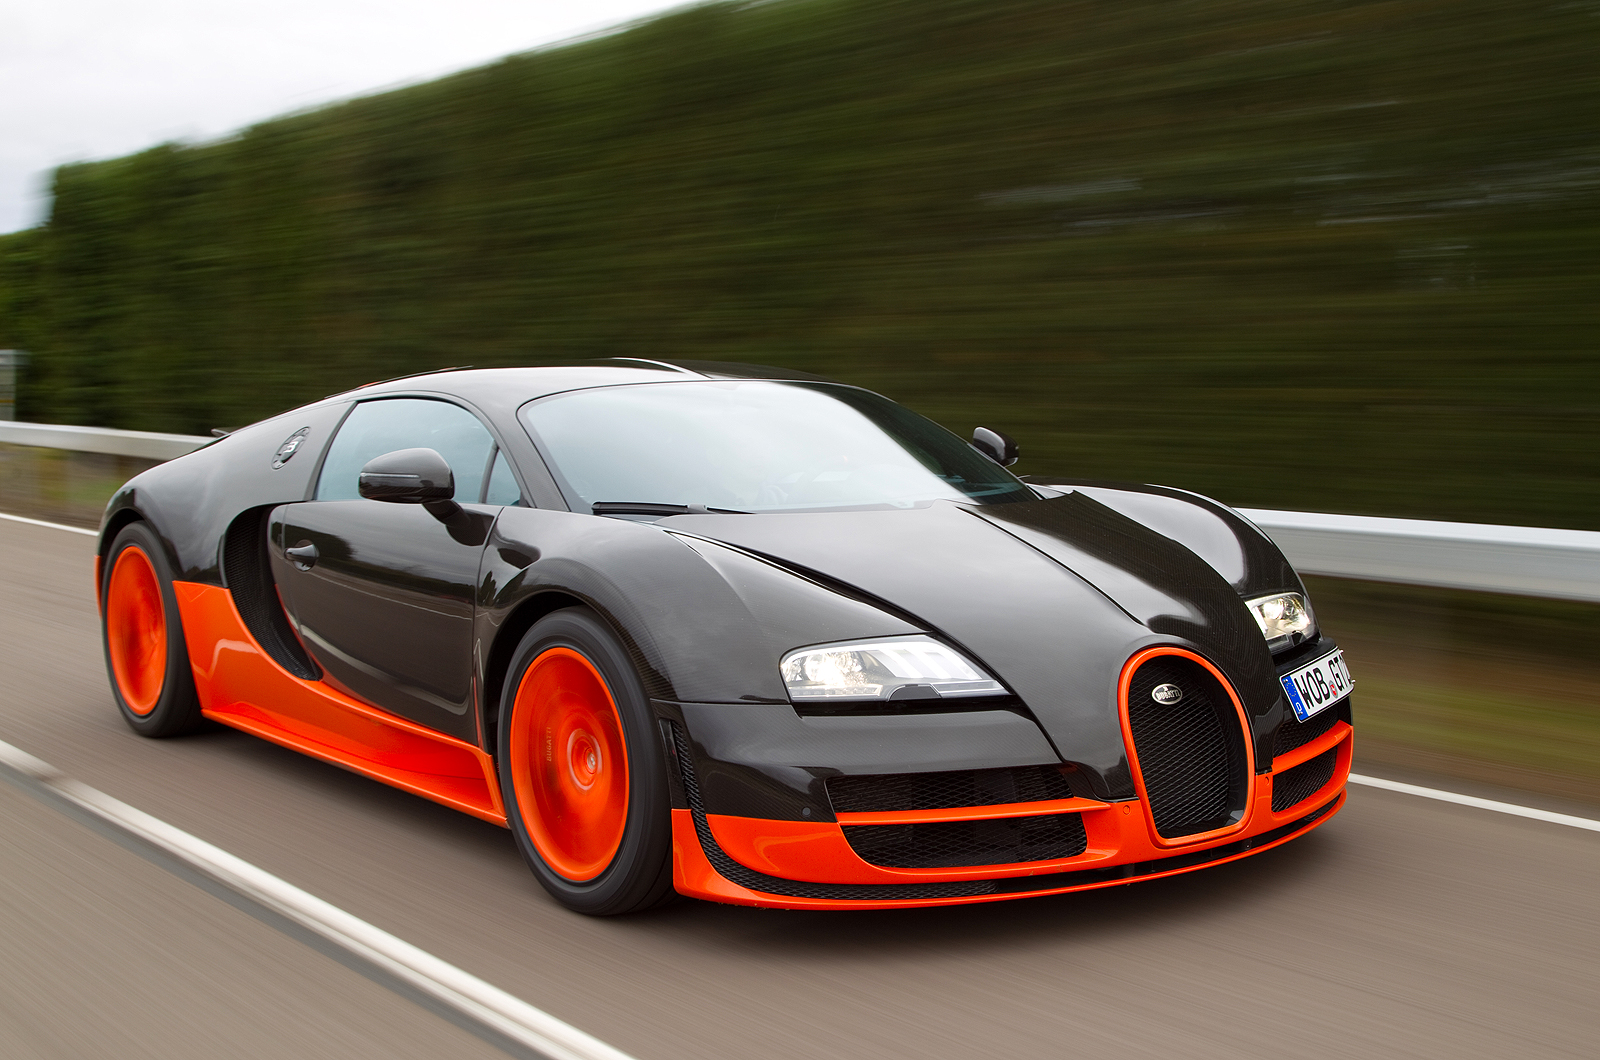 Top 10 Super Fastest Cars in the World